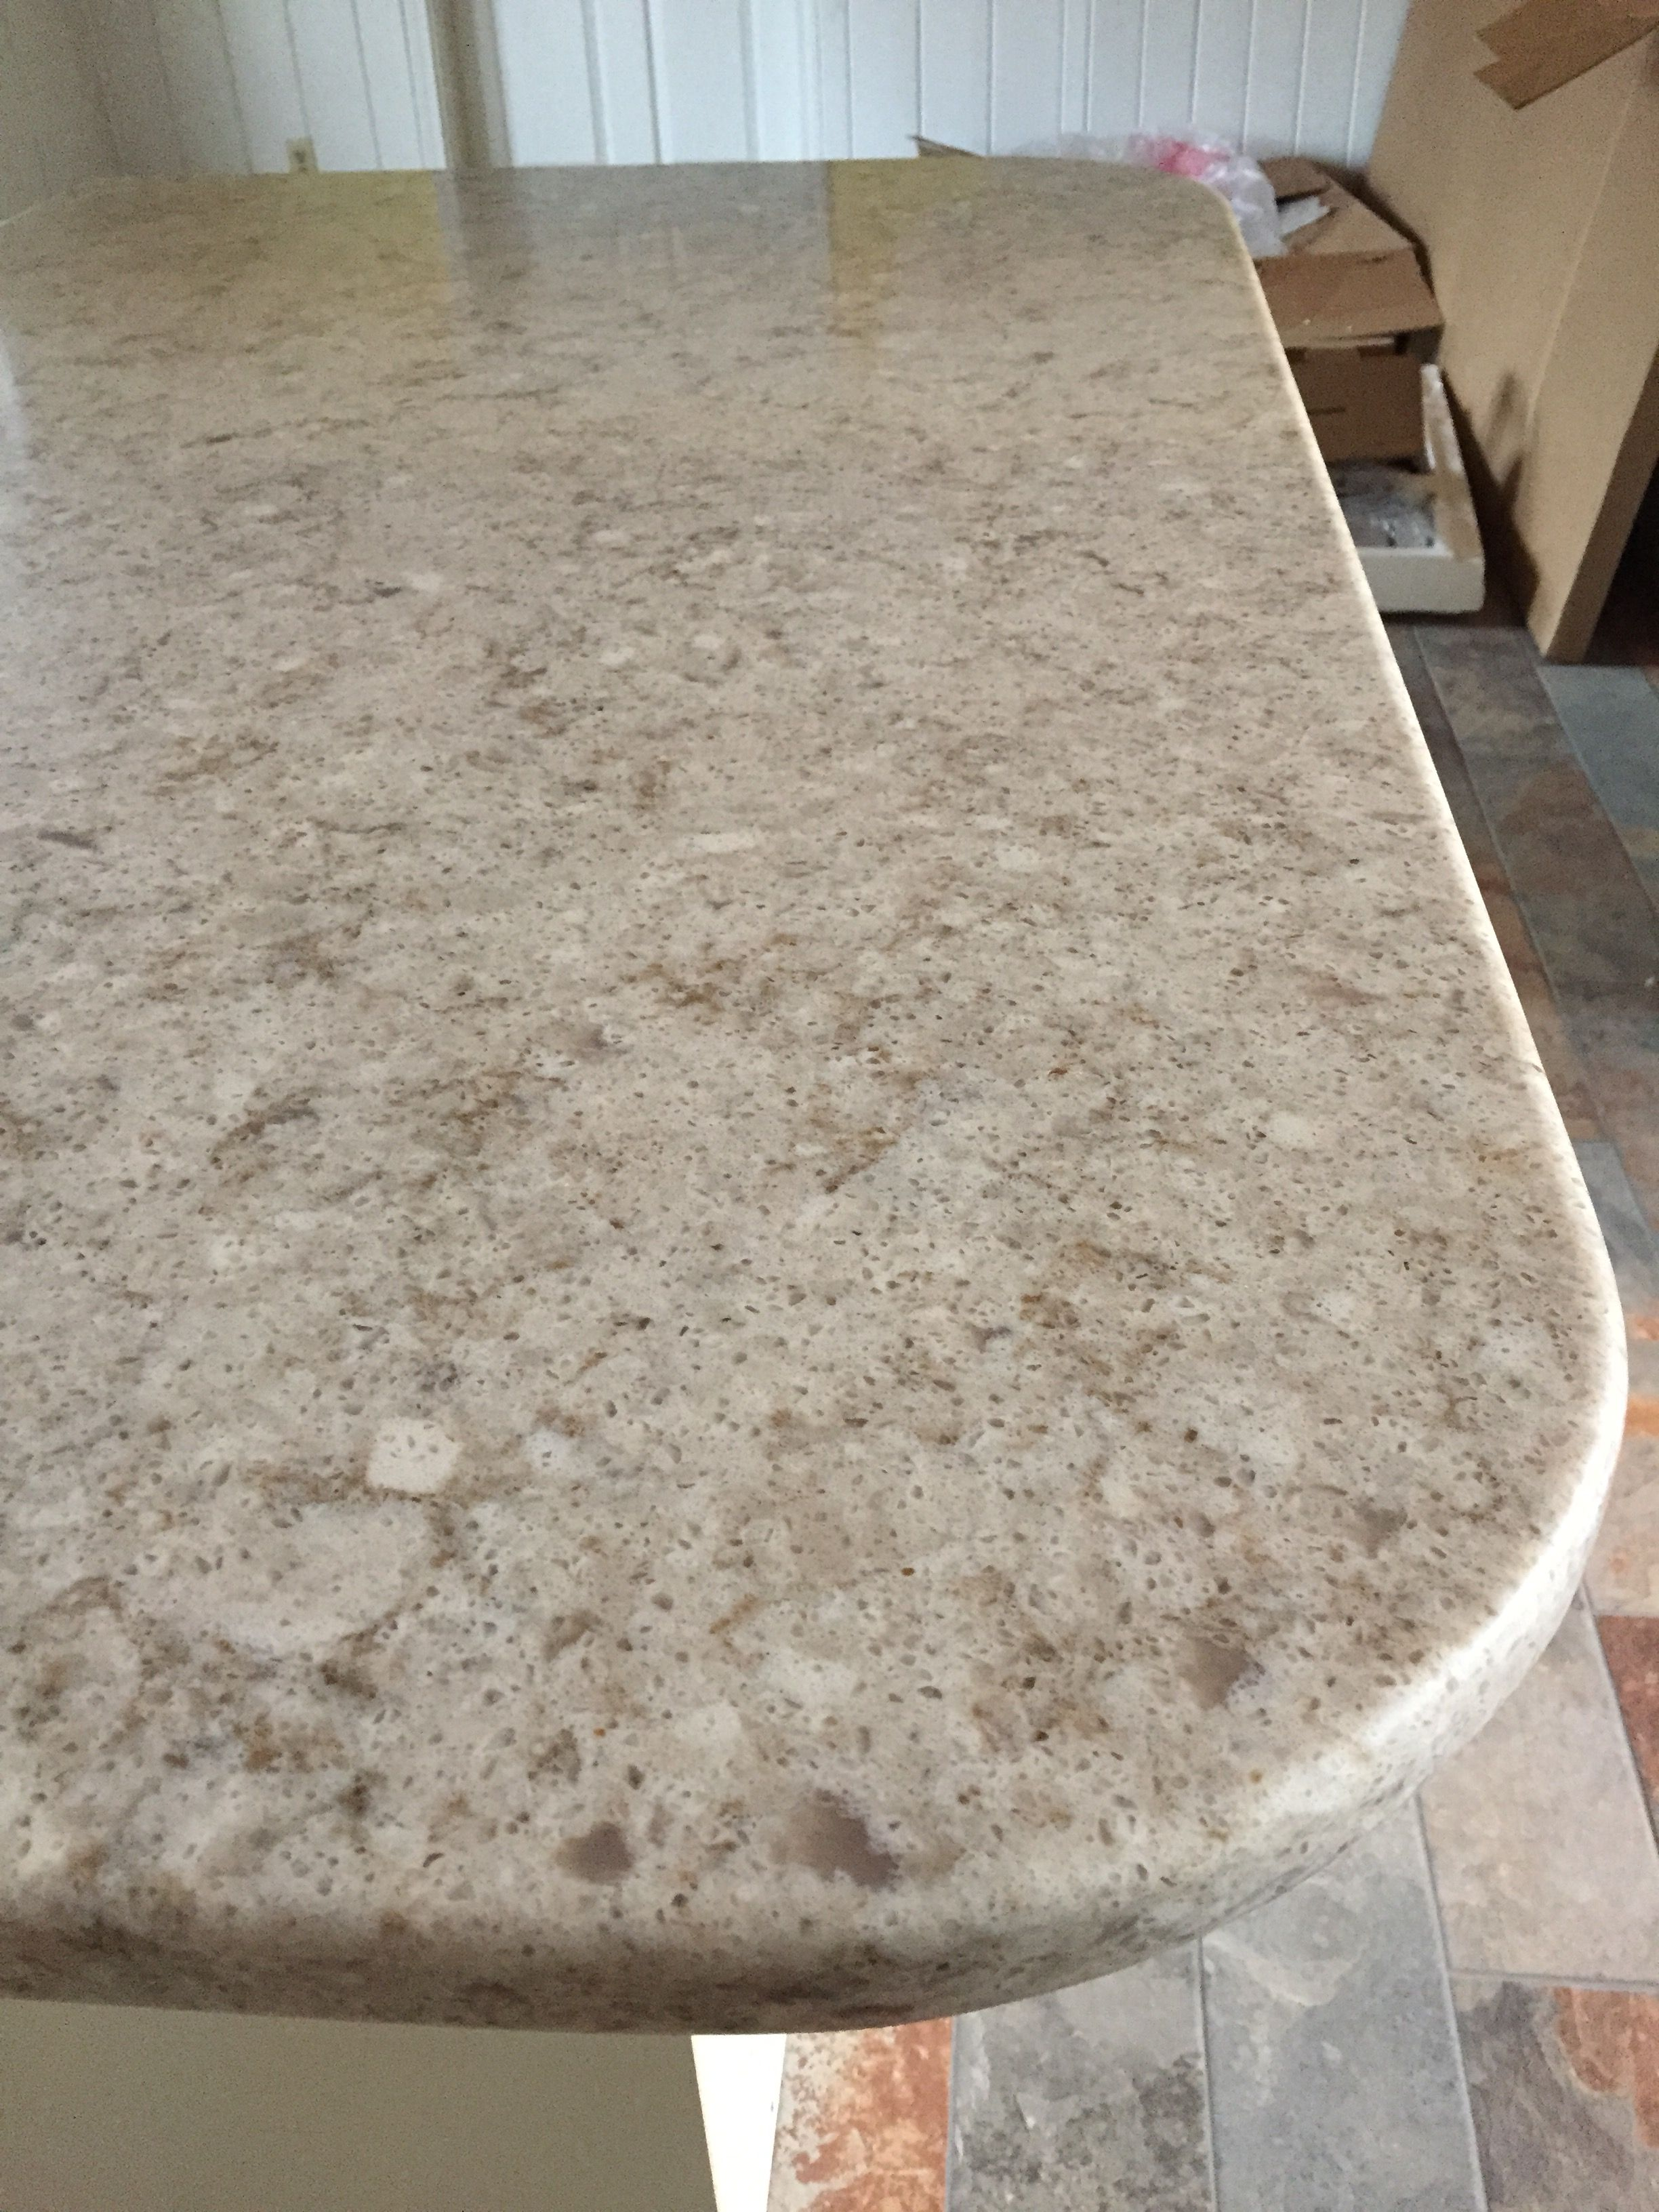 New Quartz Countertop Installed... Silestone Quasar ENGINEERED QUARTZ  COUNTERTOP